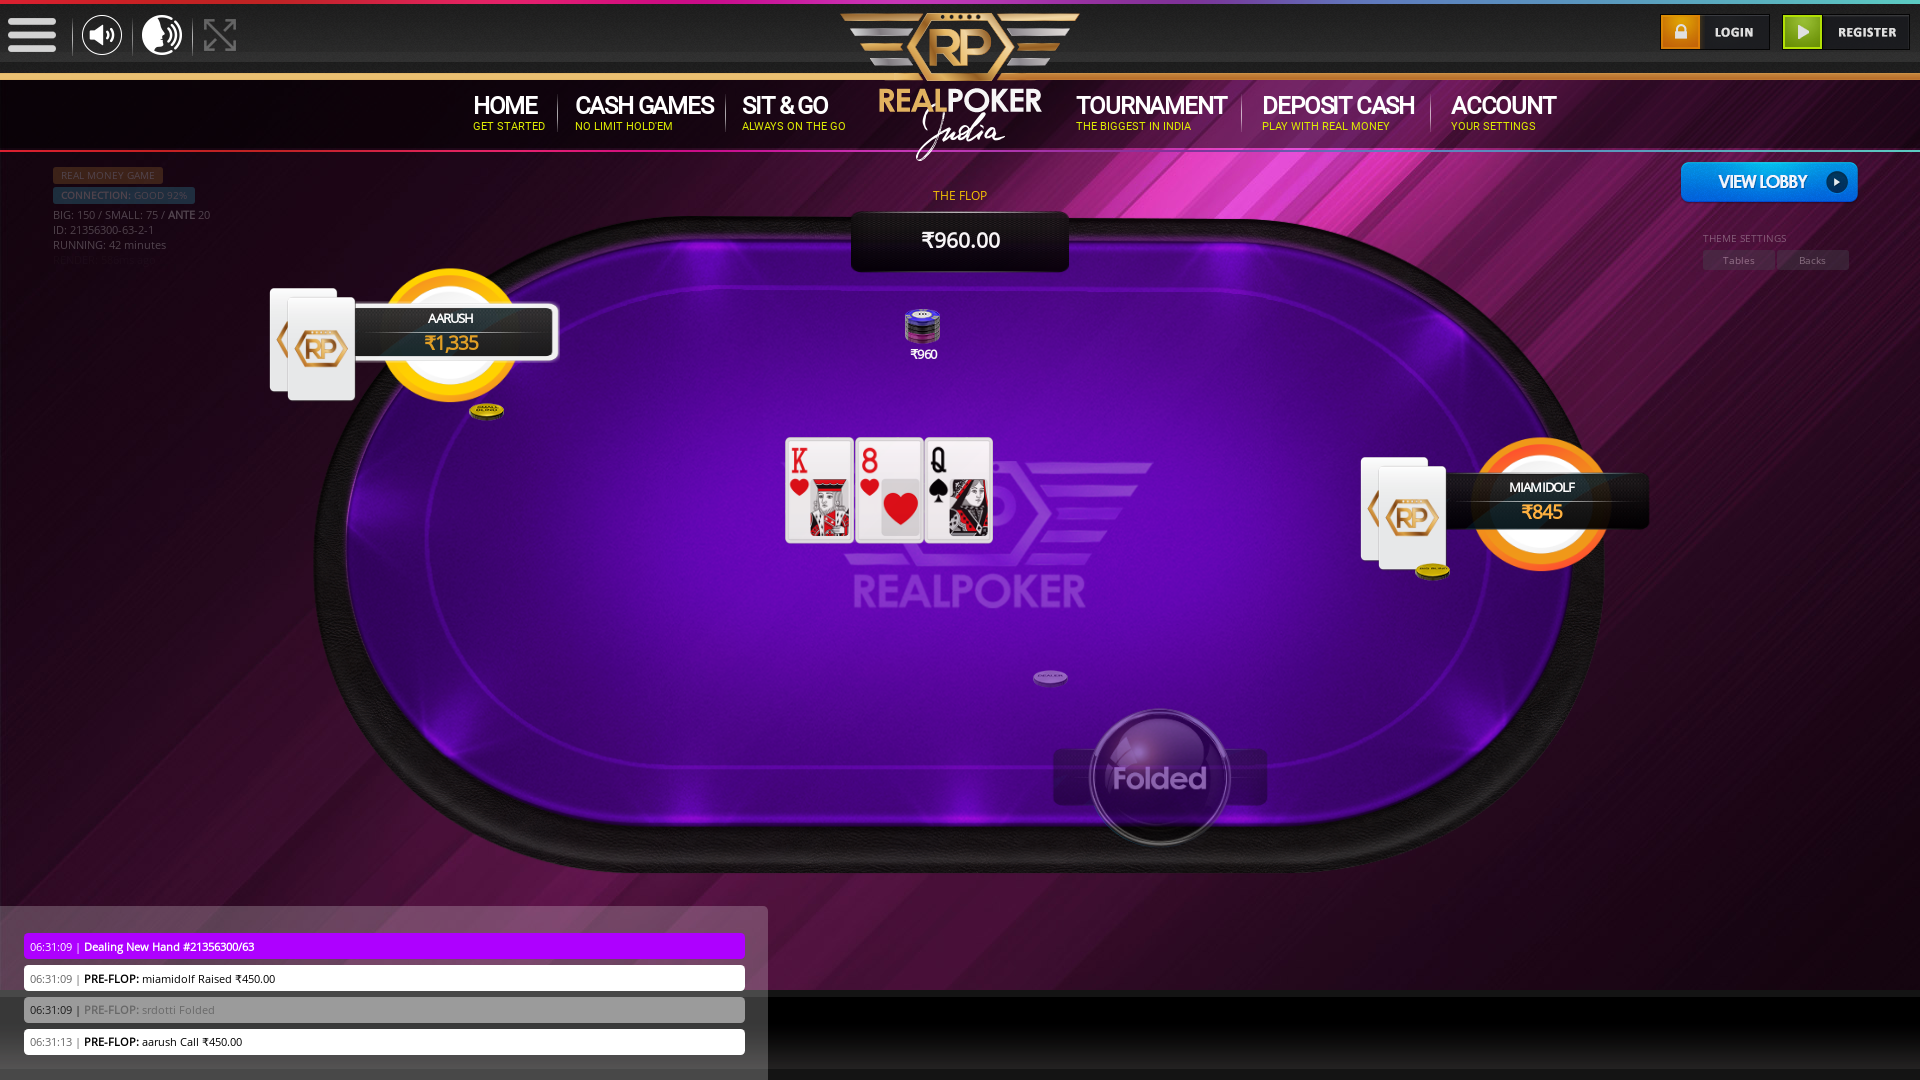 The 63rd hand dealt between srdotti, aarush, miamidolf,  on poker india